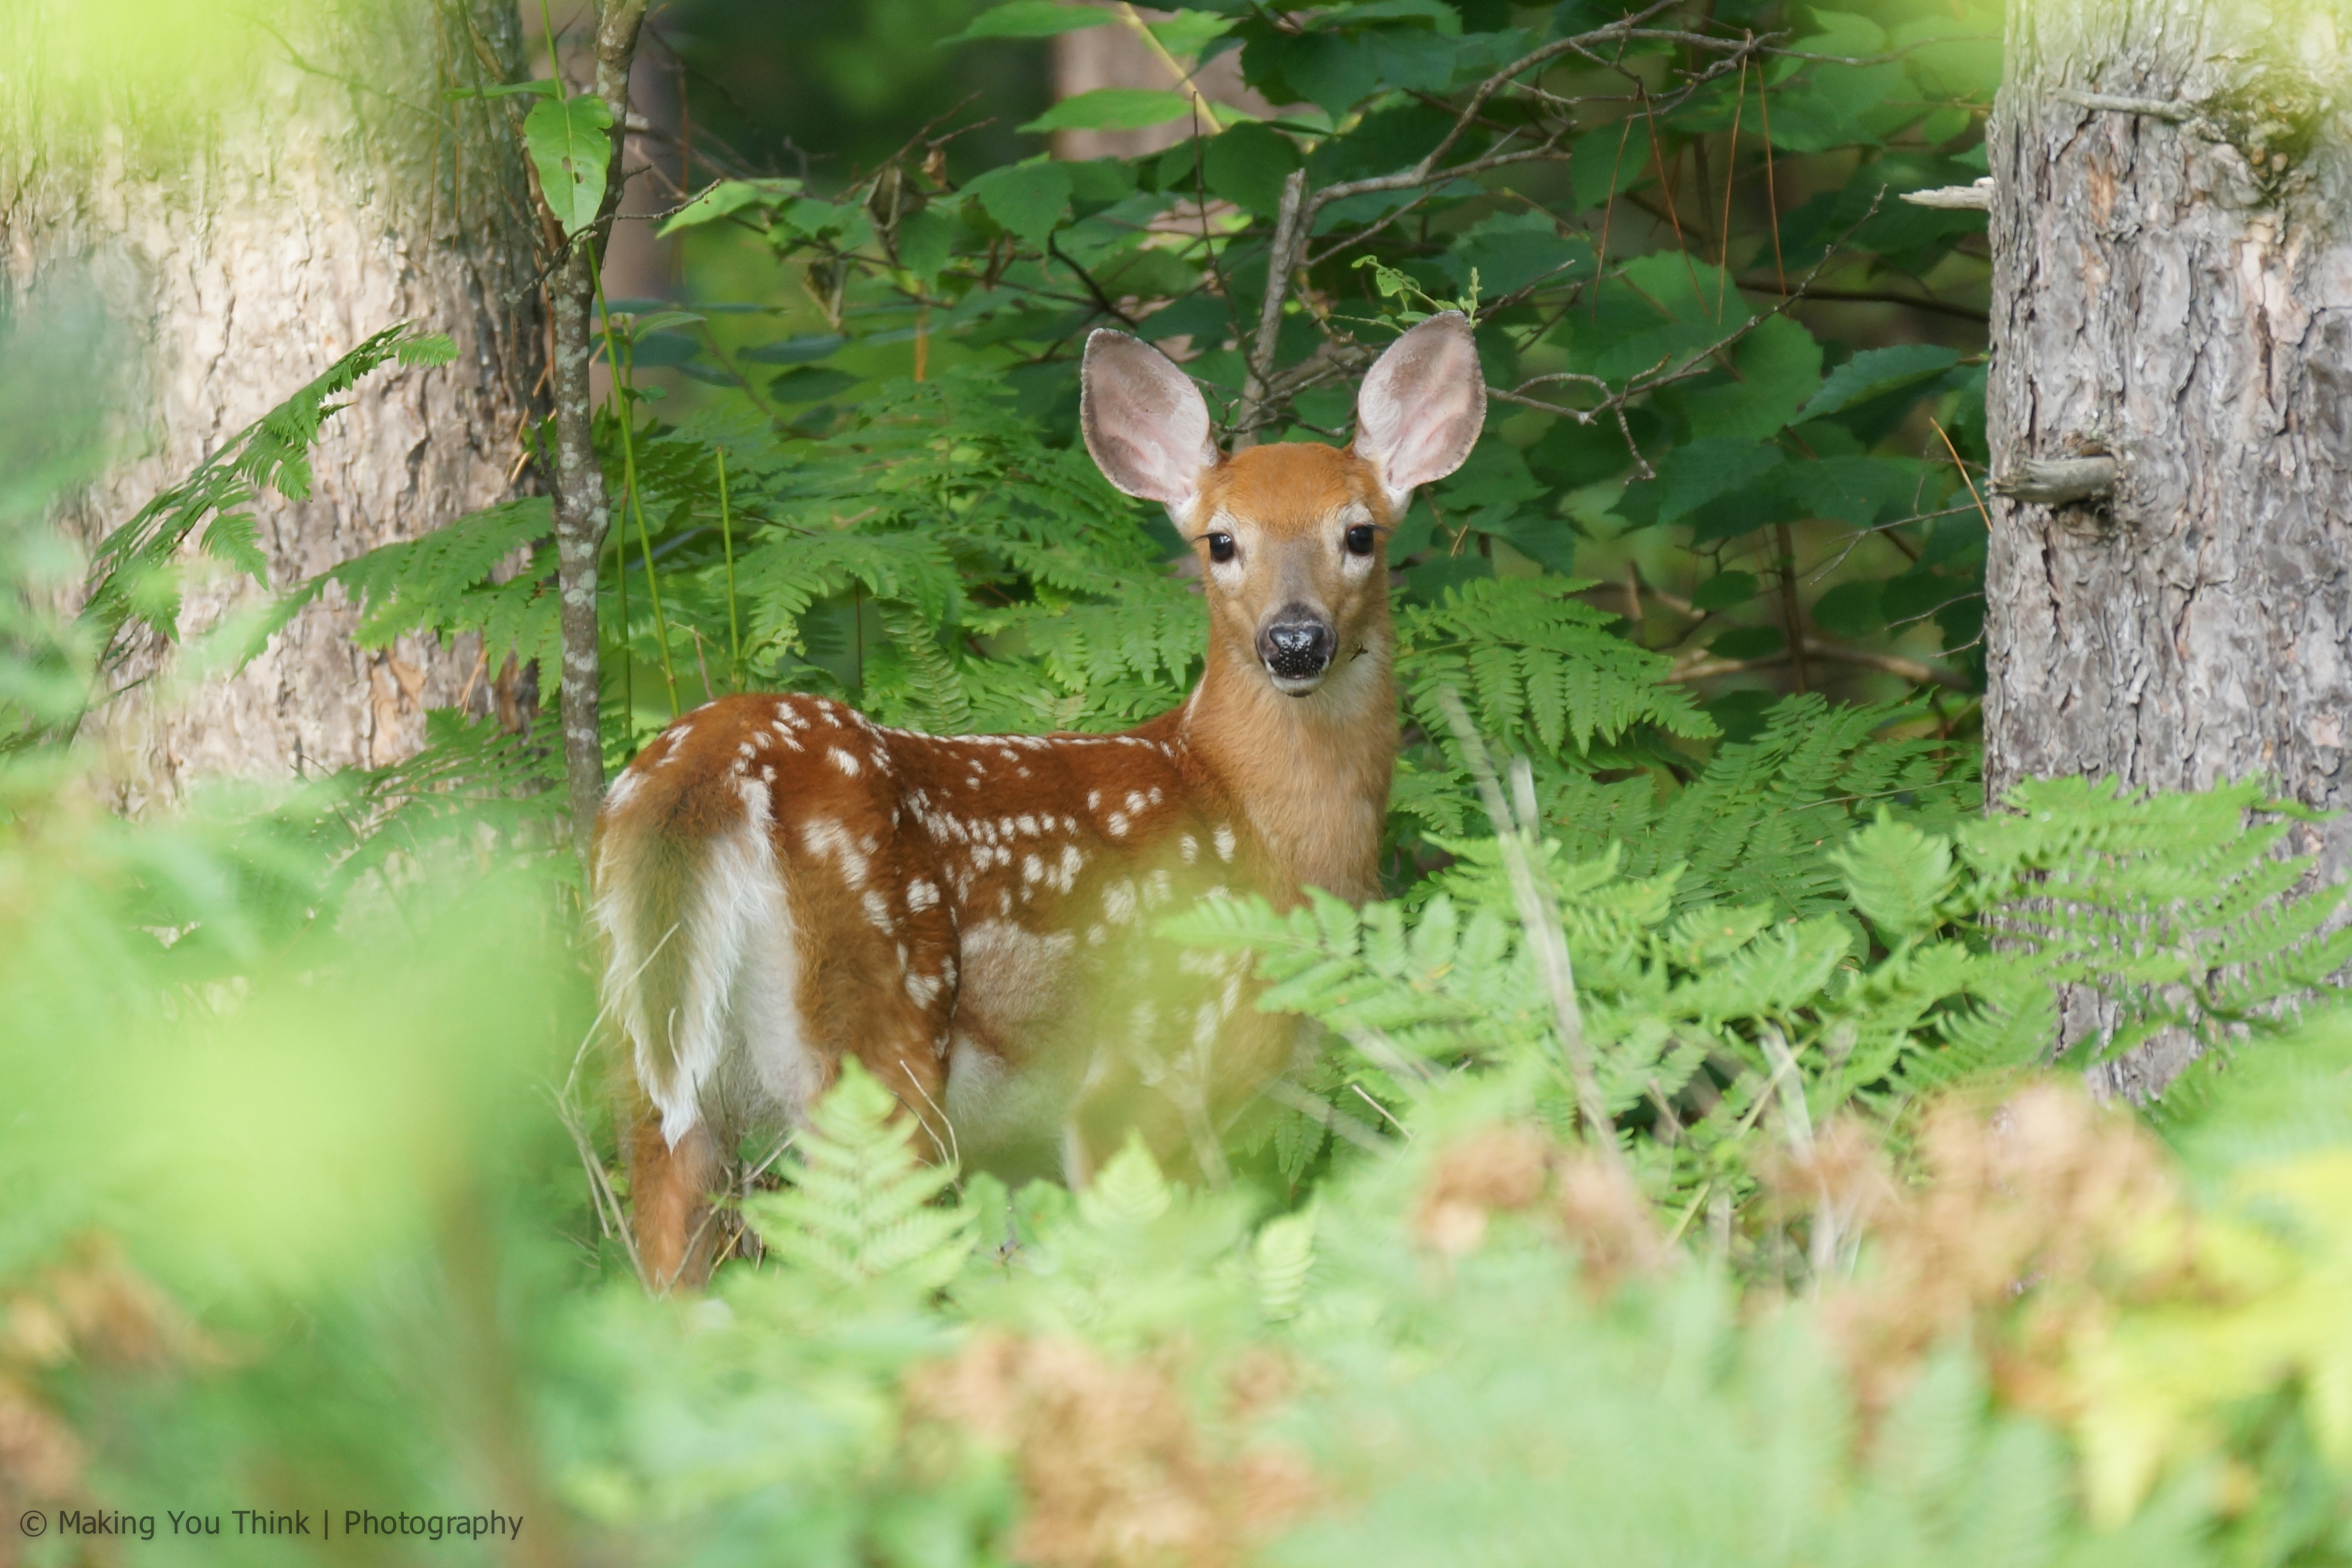 Hunting provides an economical way to quell the deer population during the fall.